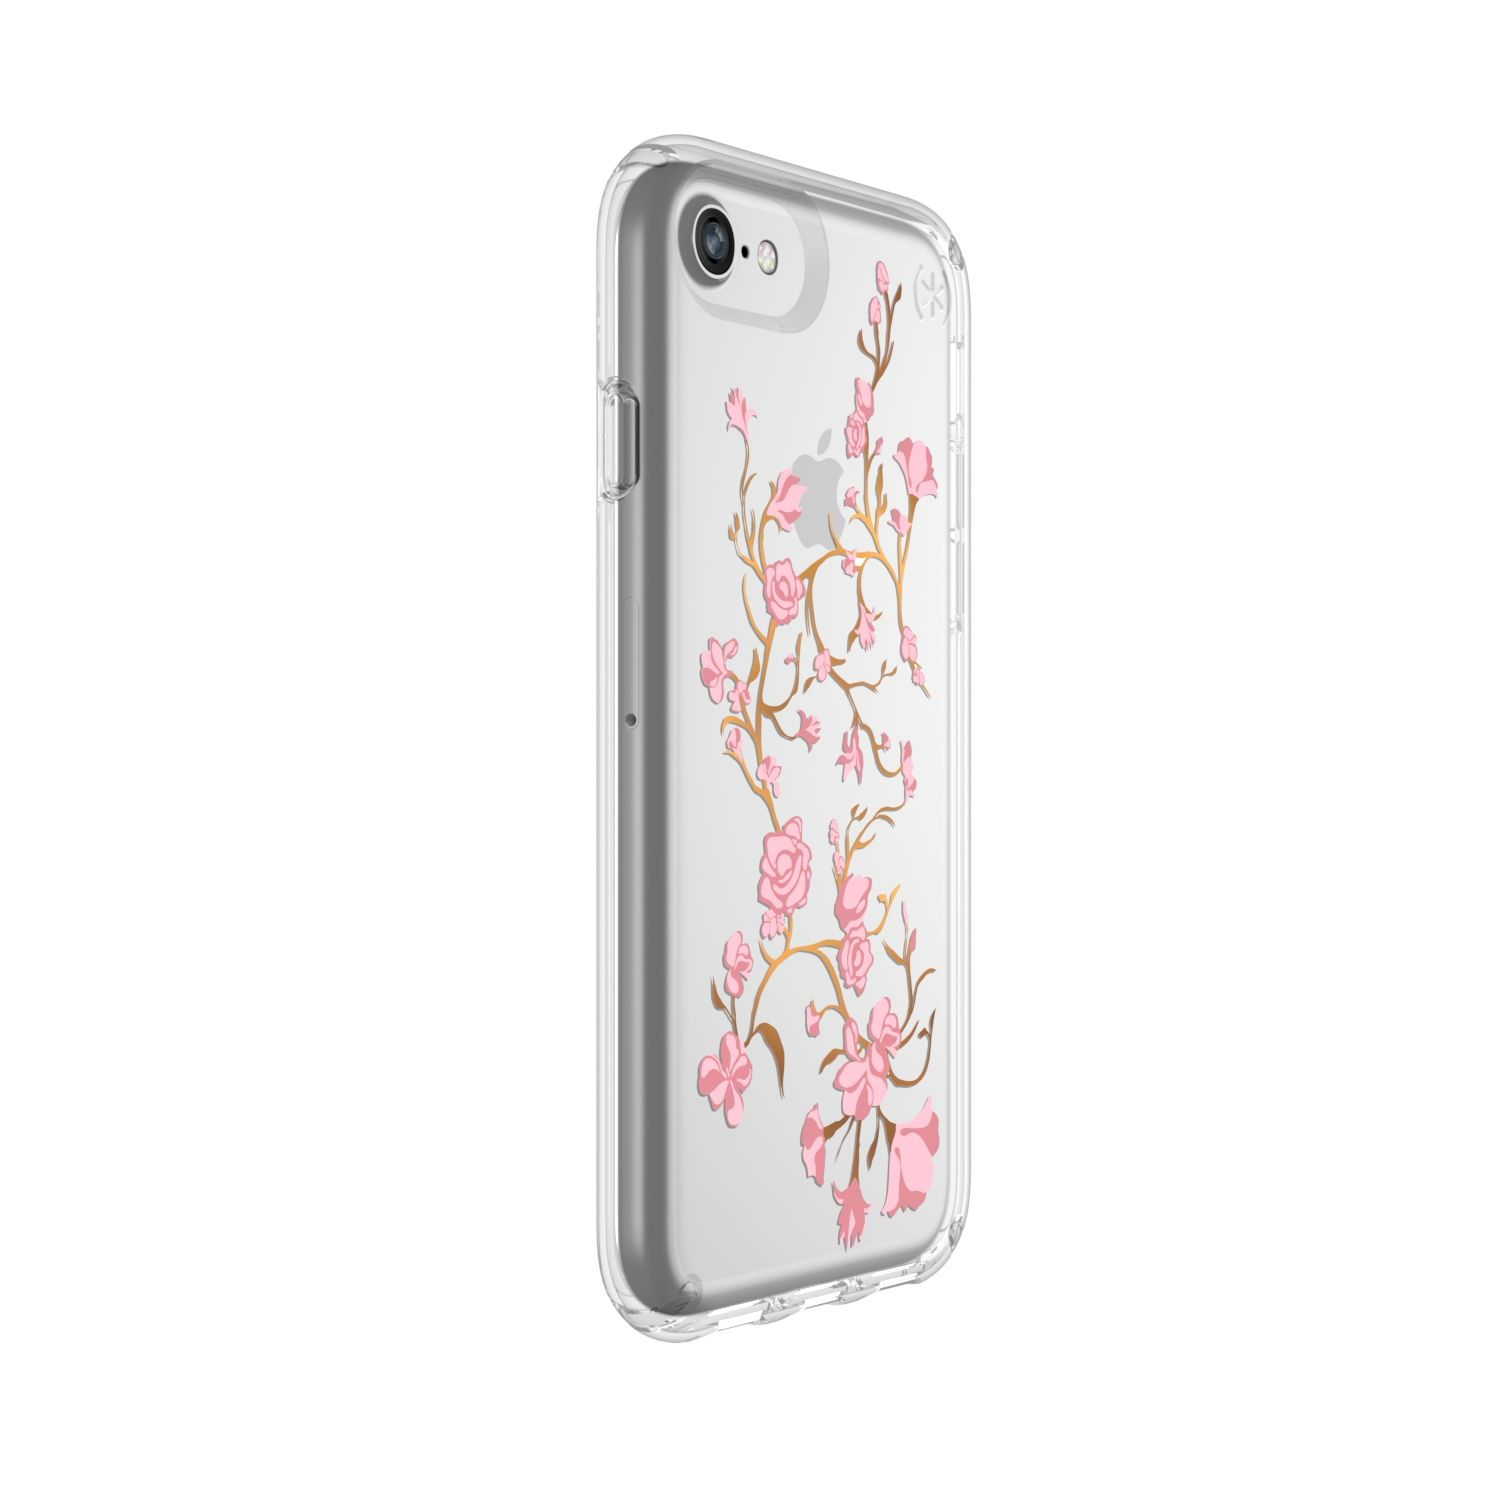 print pictures from iphone at walmart speck presidio clear print iphone 8 cases walmart 2575